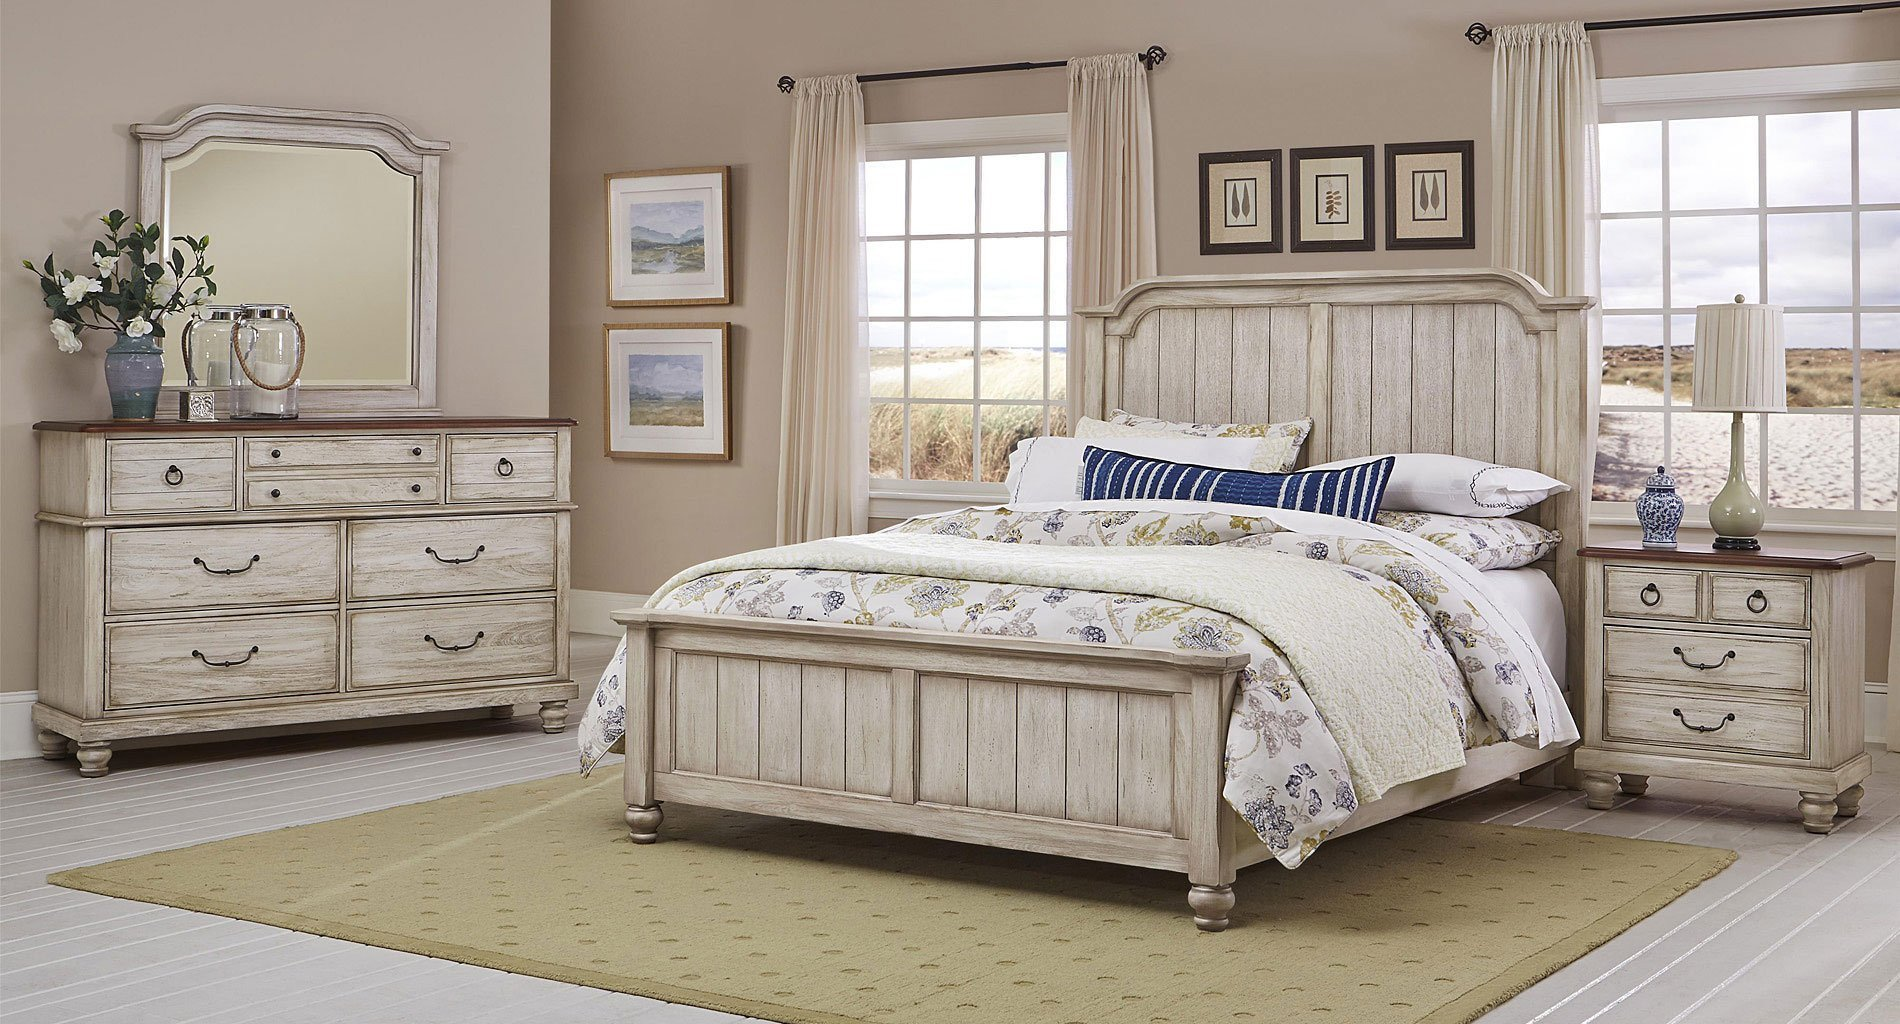 Distressed Wood Bedroom Furniture Beautiful Distressed F White Bedroom Furniture